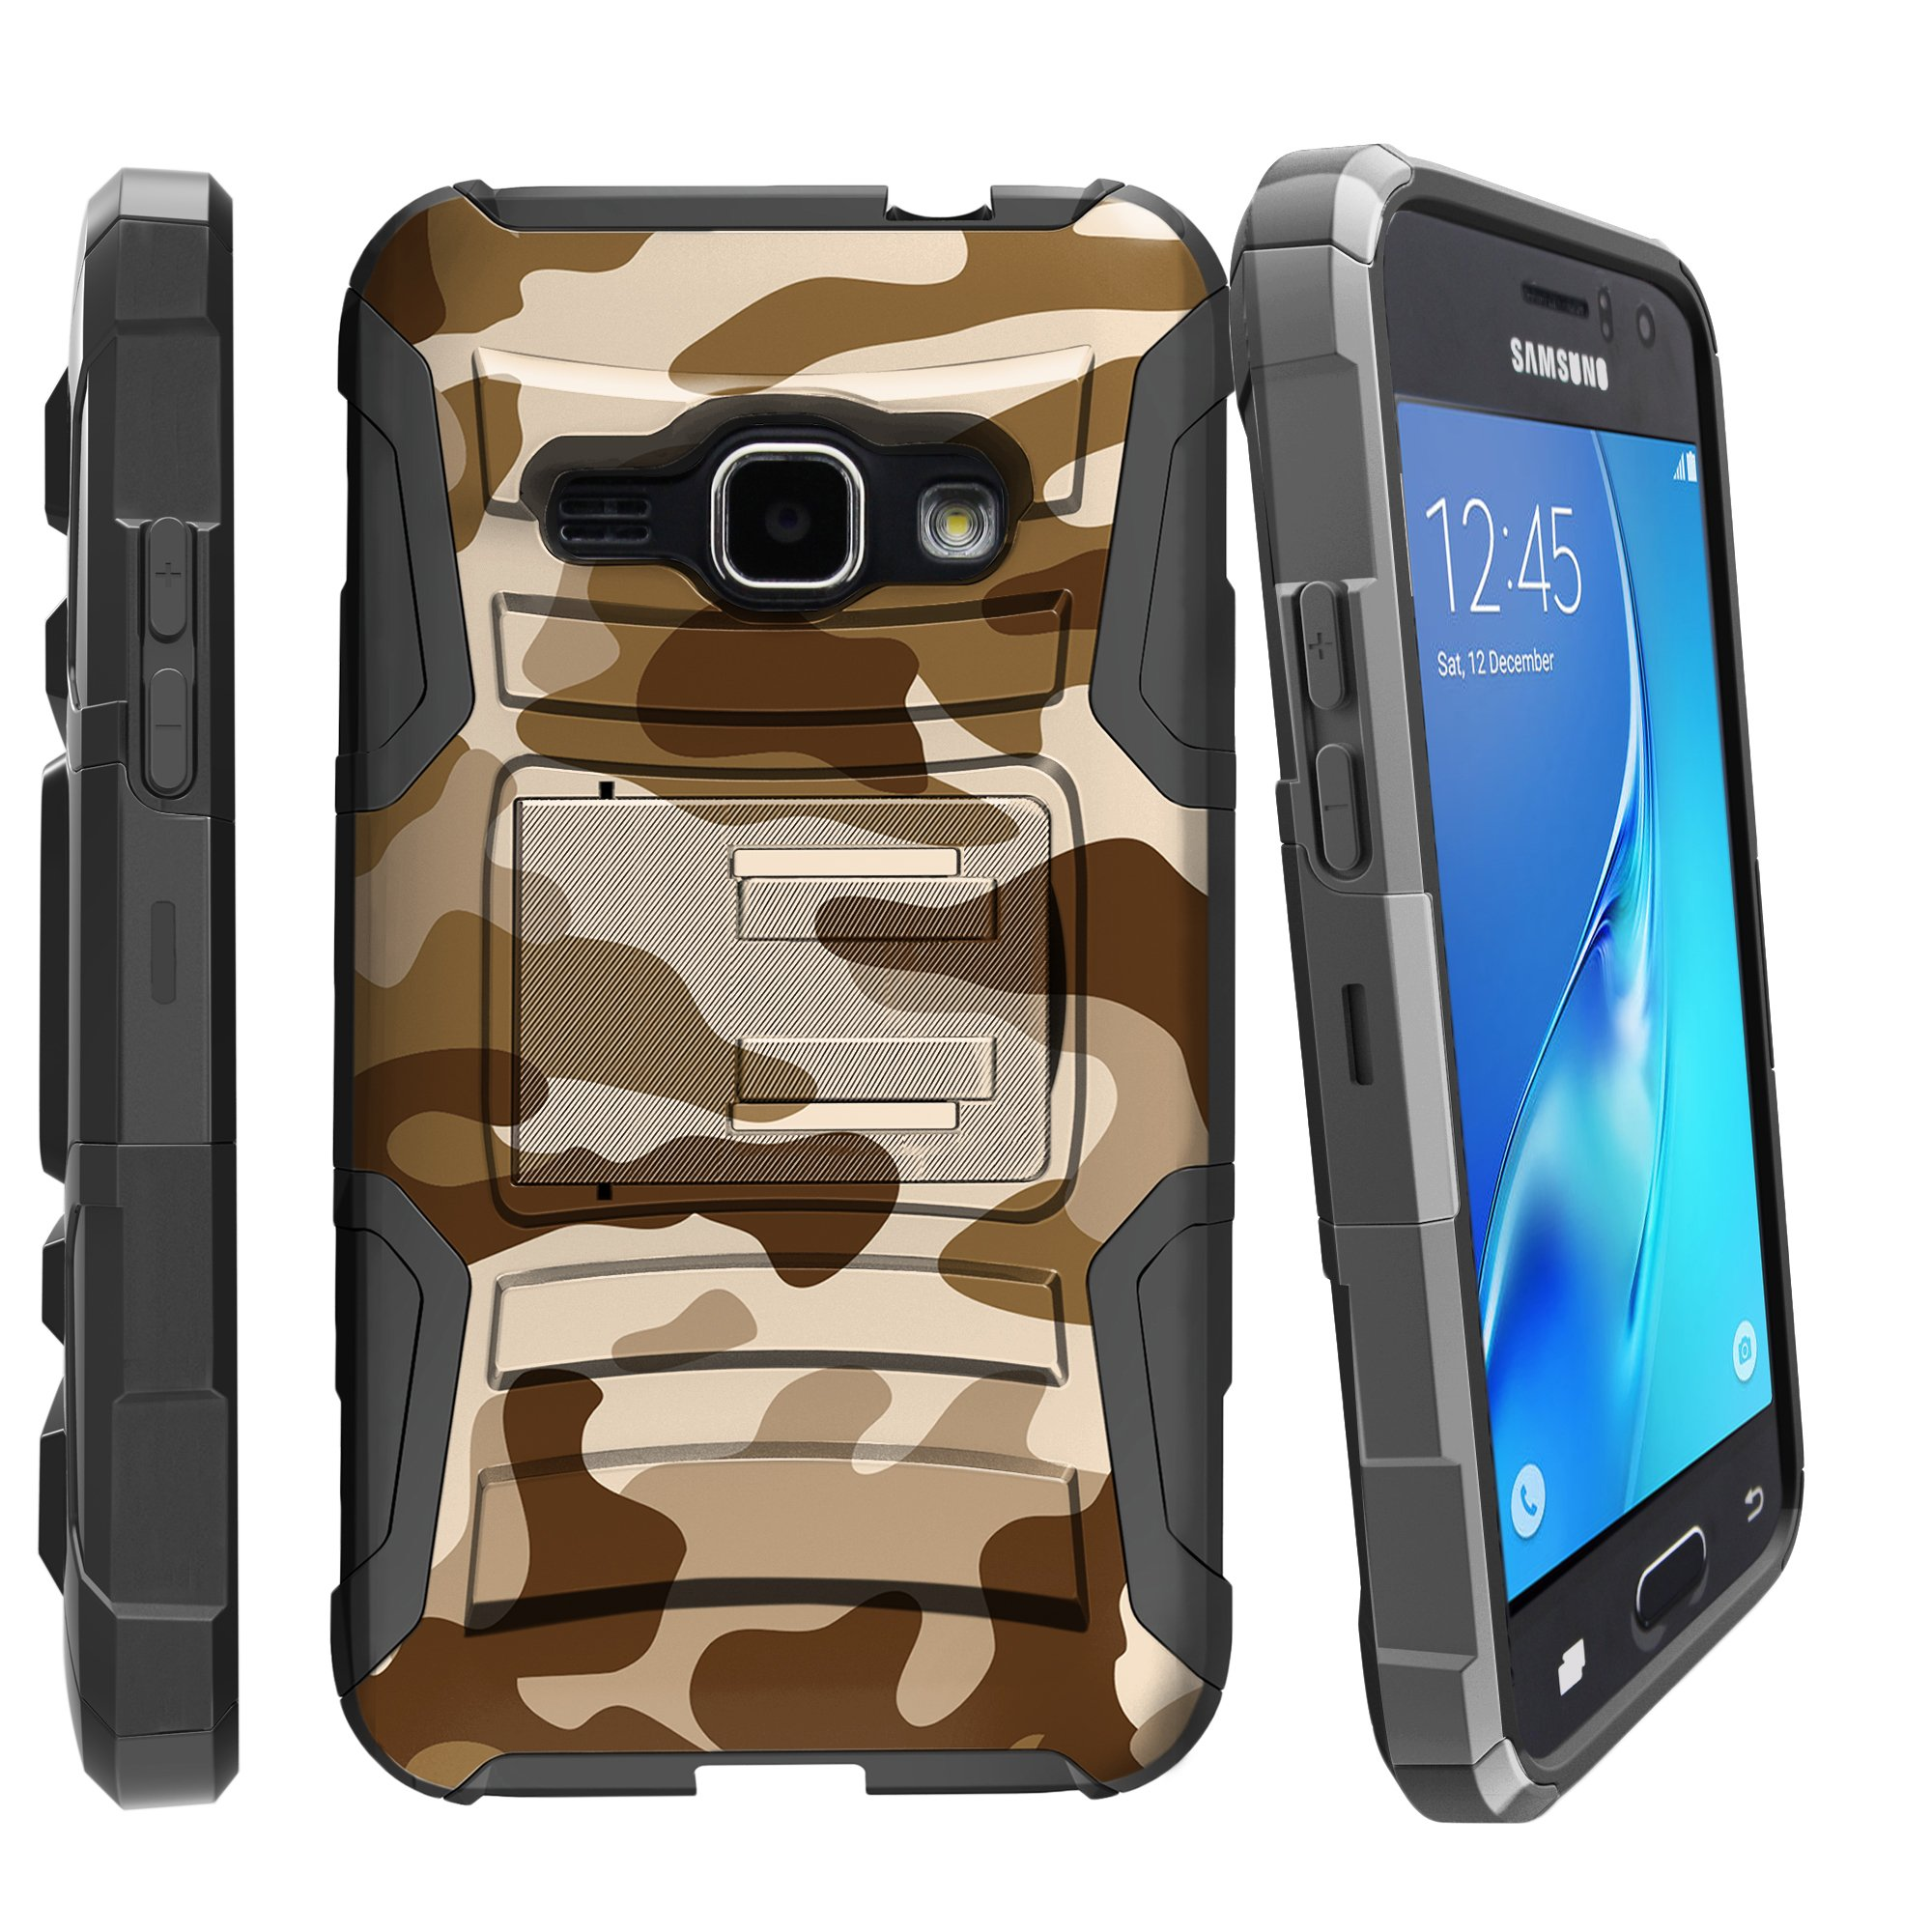 Case for Samsung Galaxy J3 | Case for Express Prime | Case for Amp Prime  [ Clip Armor ] Heavy Duty Case with Belt Clip & Kickstand Camo Collection